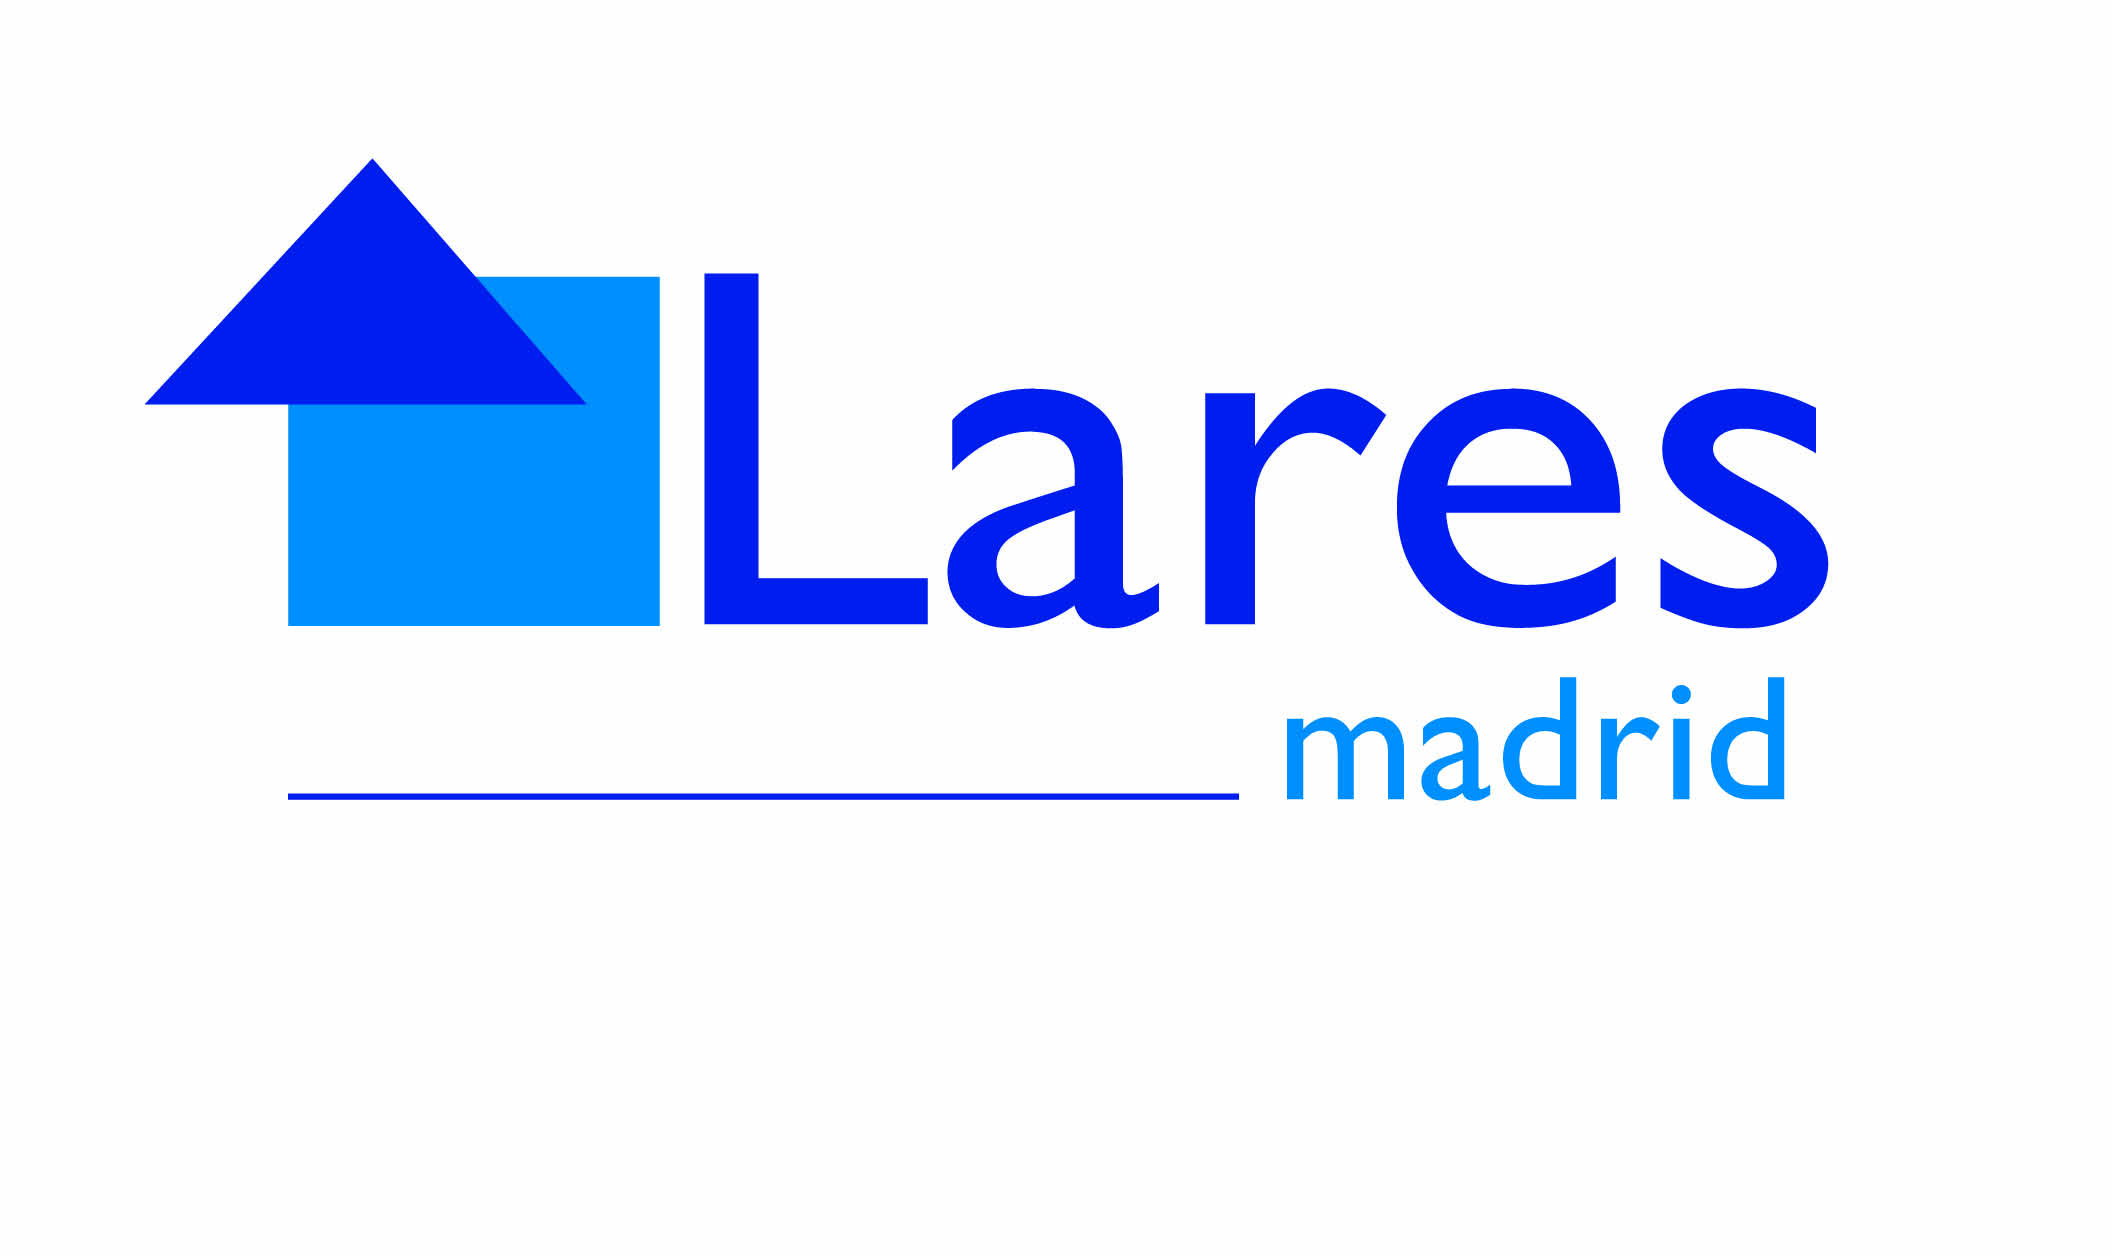 LARES madrid